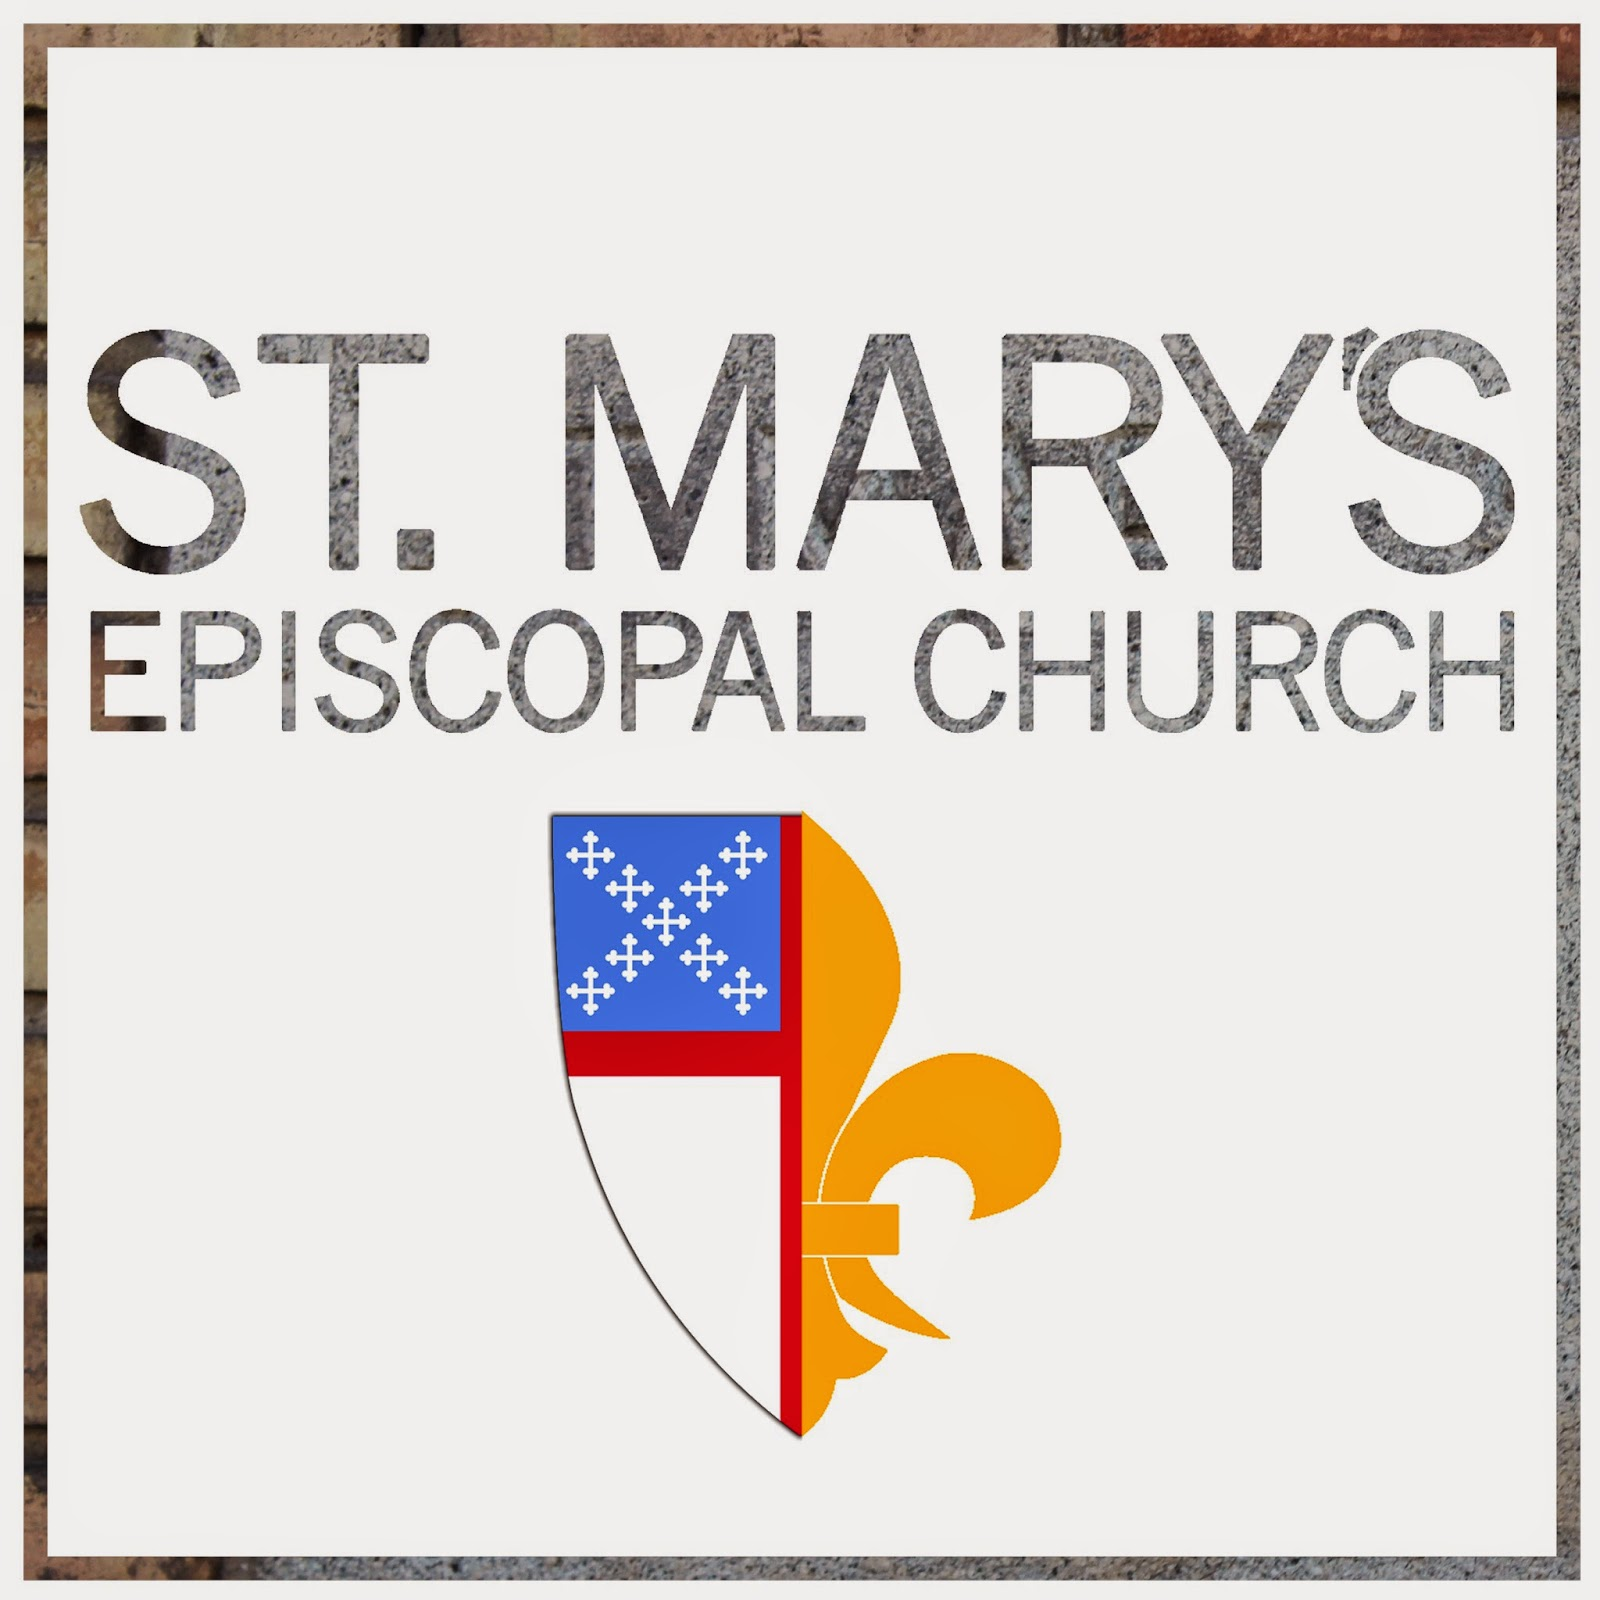 Provo St Marys Episcopal Church The Symbolism In Our Symbols